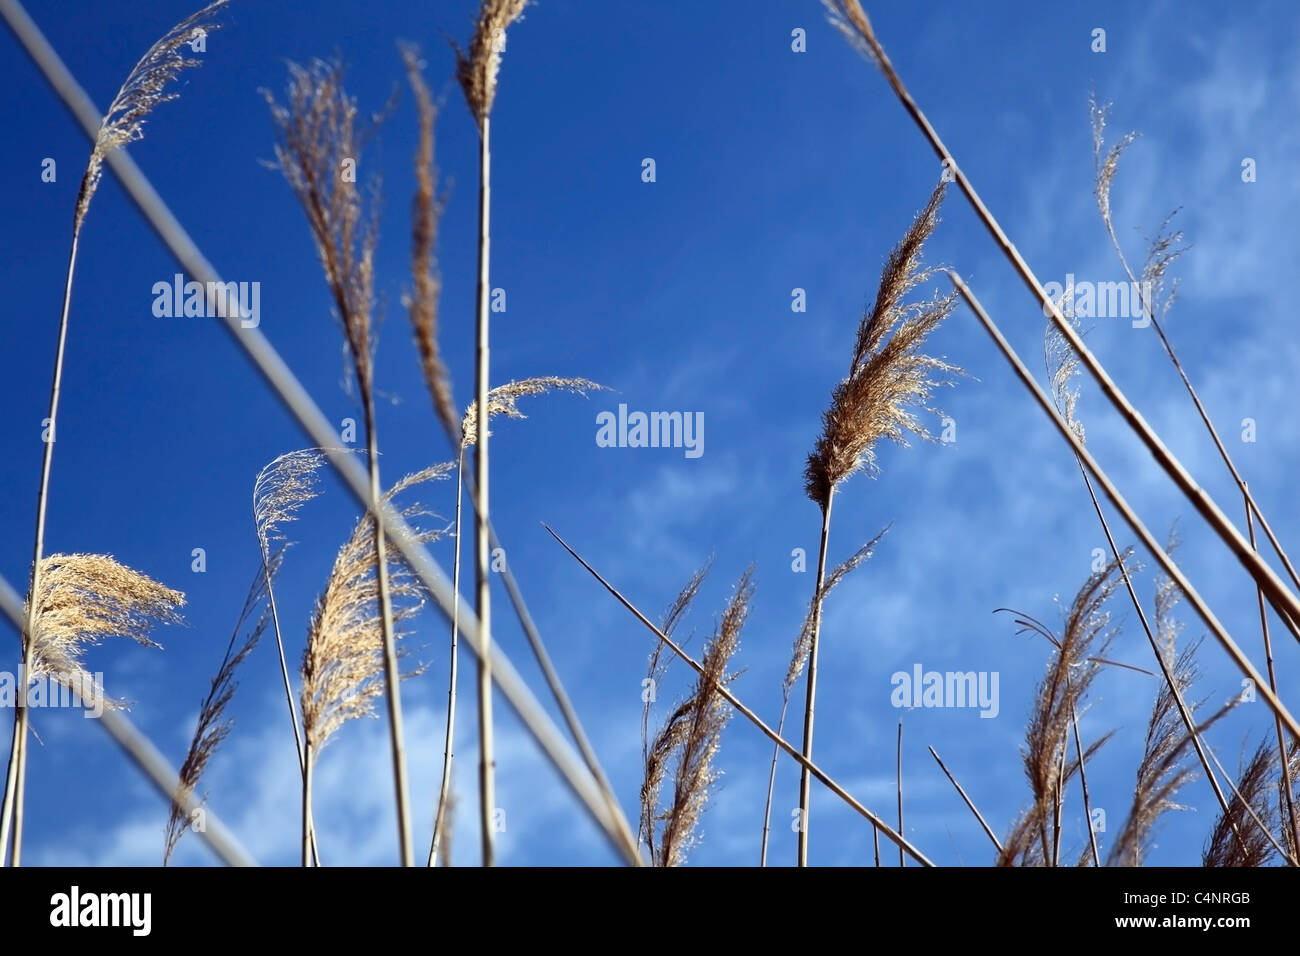 Summer song. Plants on a blue sky background. Shallow DOF. - Stock Image